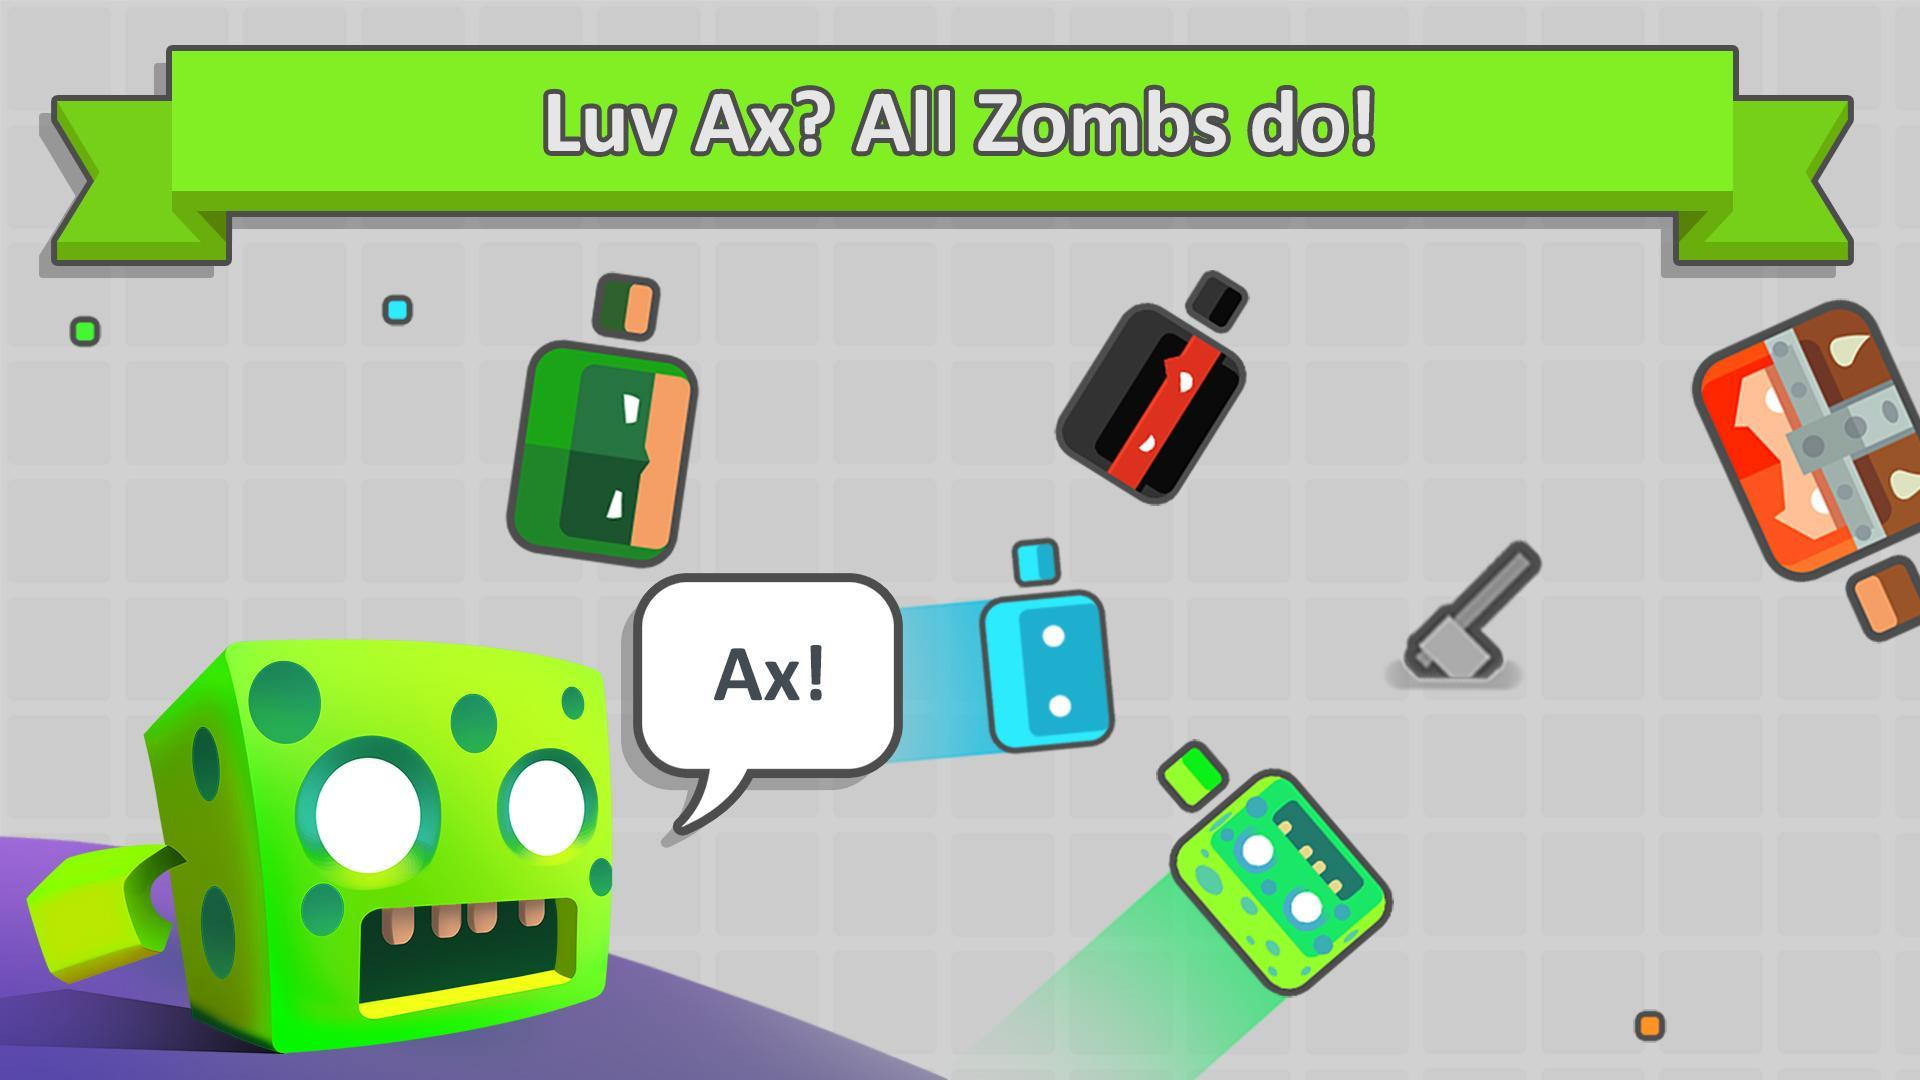 Zlax.io Zombs Luv Ax 1.9.1 Screenshot 8